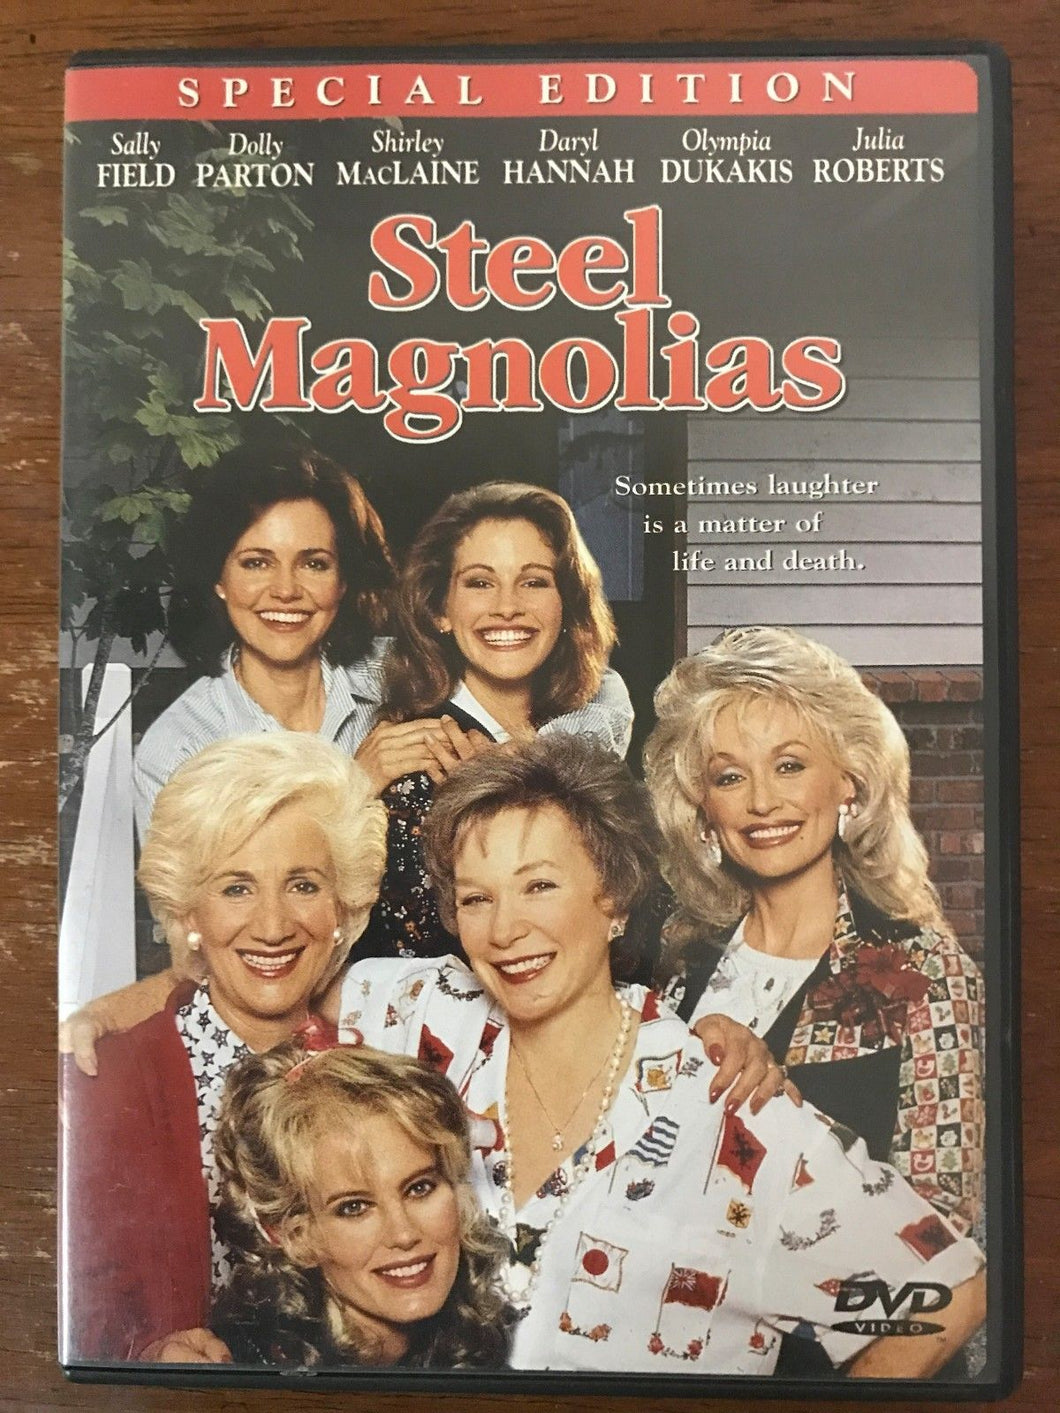 Steel Magnolias (DVD, 2000) Julia Roberts/Sally Field/Shirley MacLaine